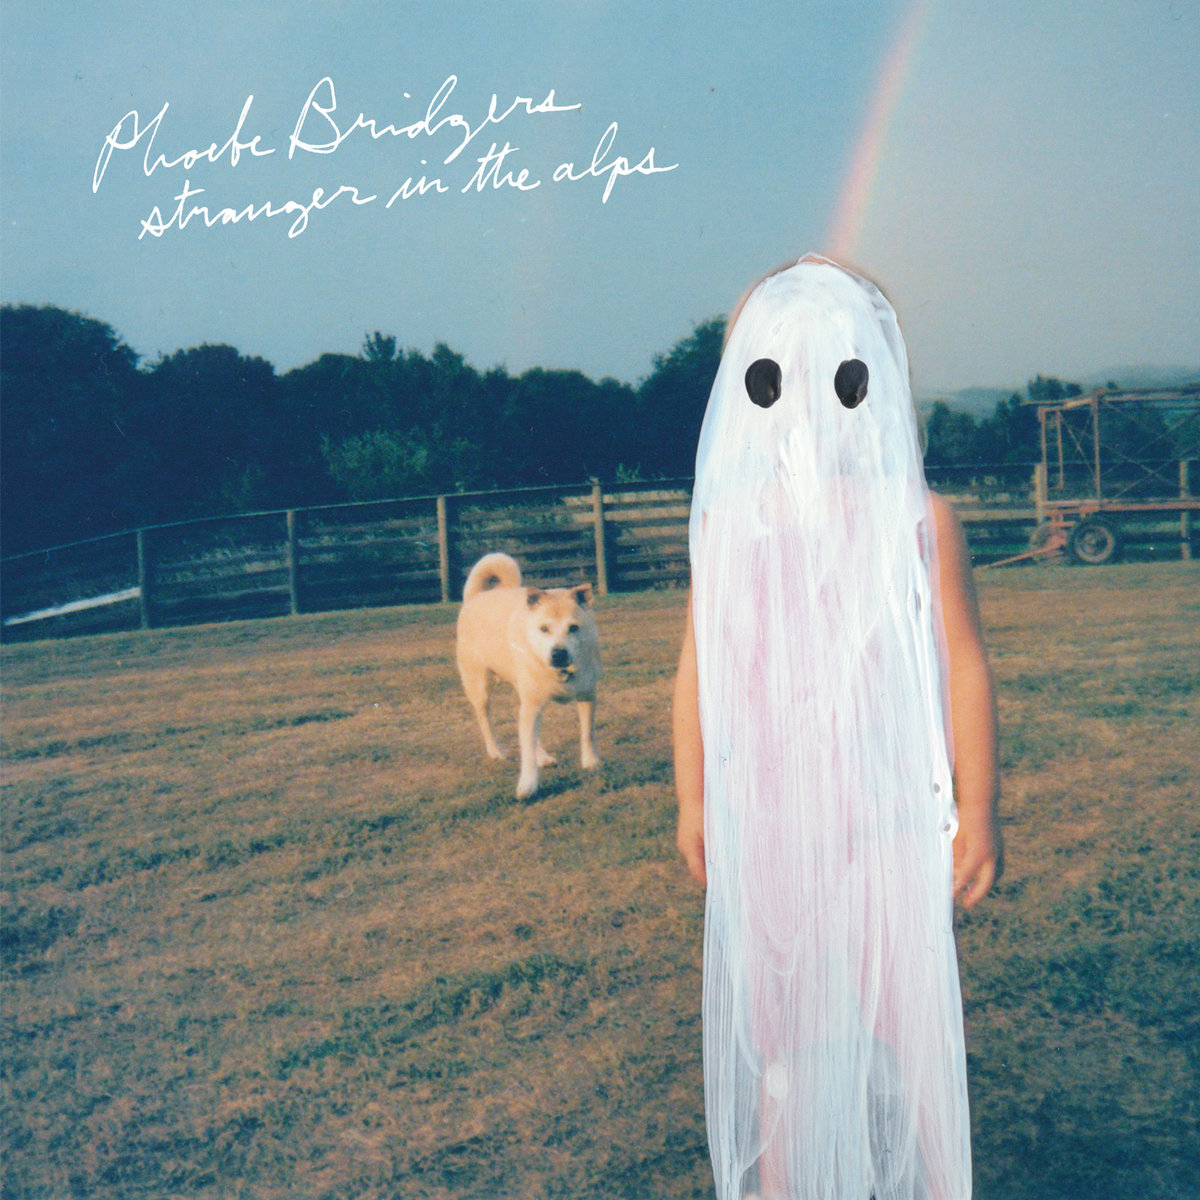 Phoebe Bridgers / Stranger in the Alps(CD)